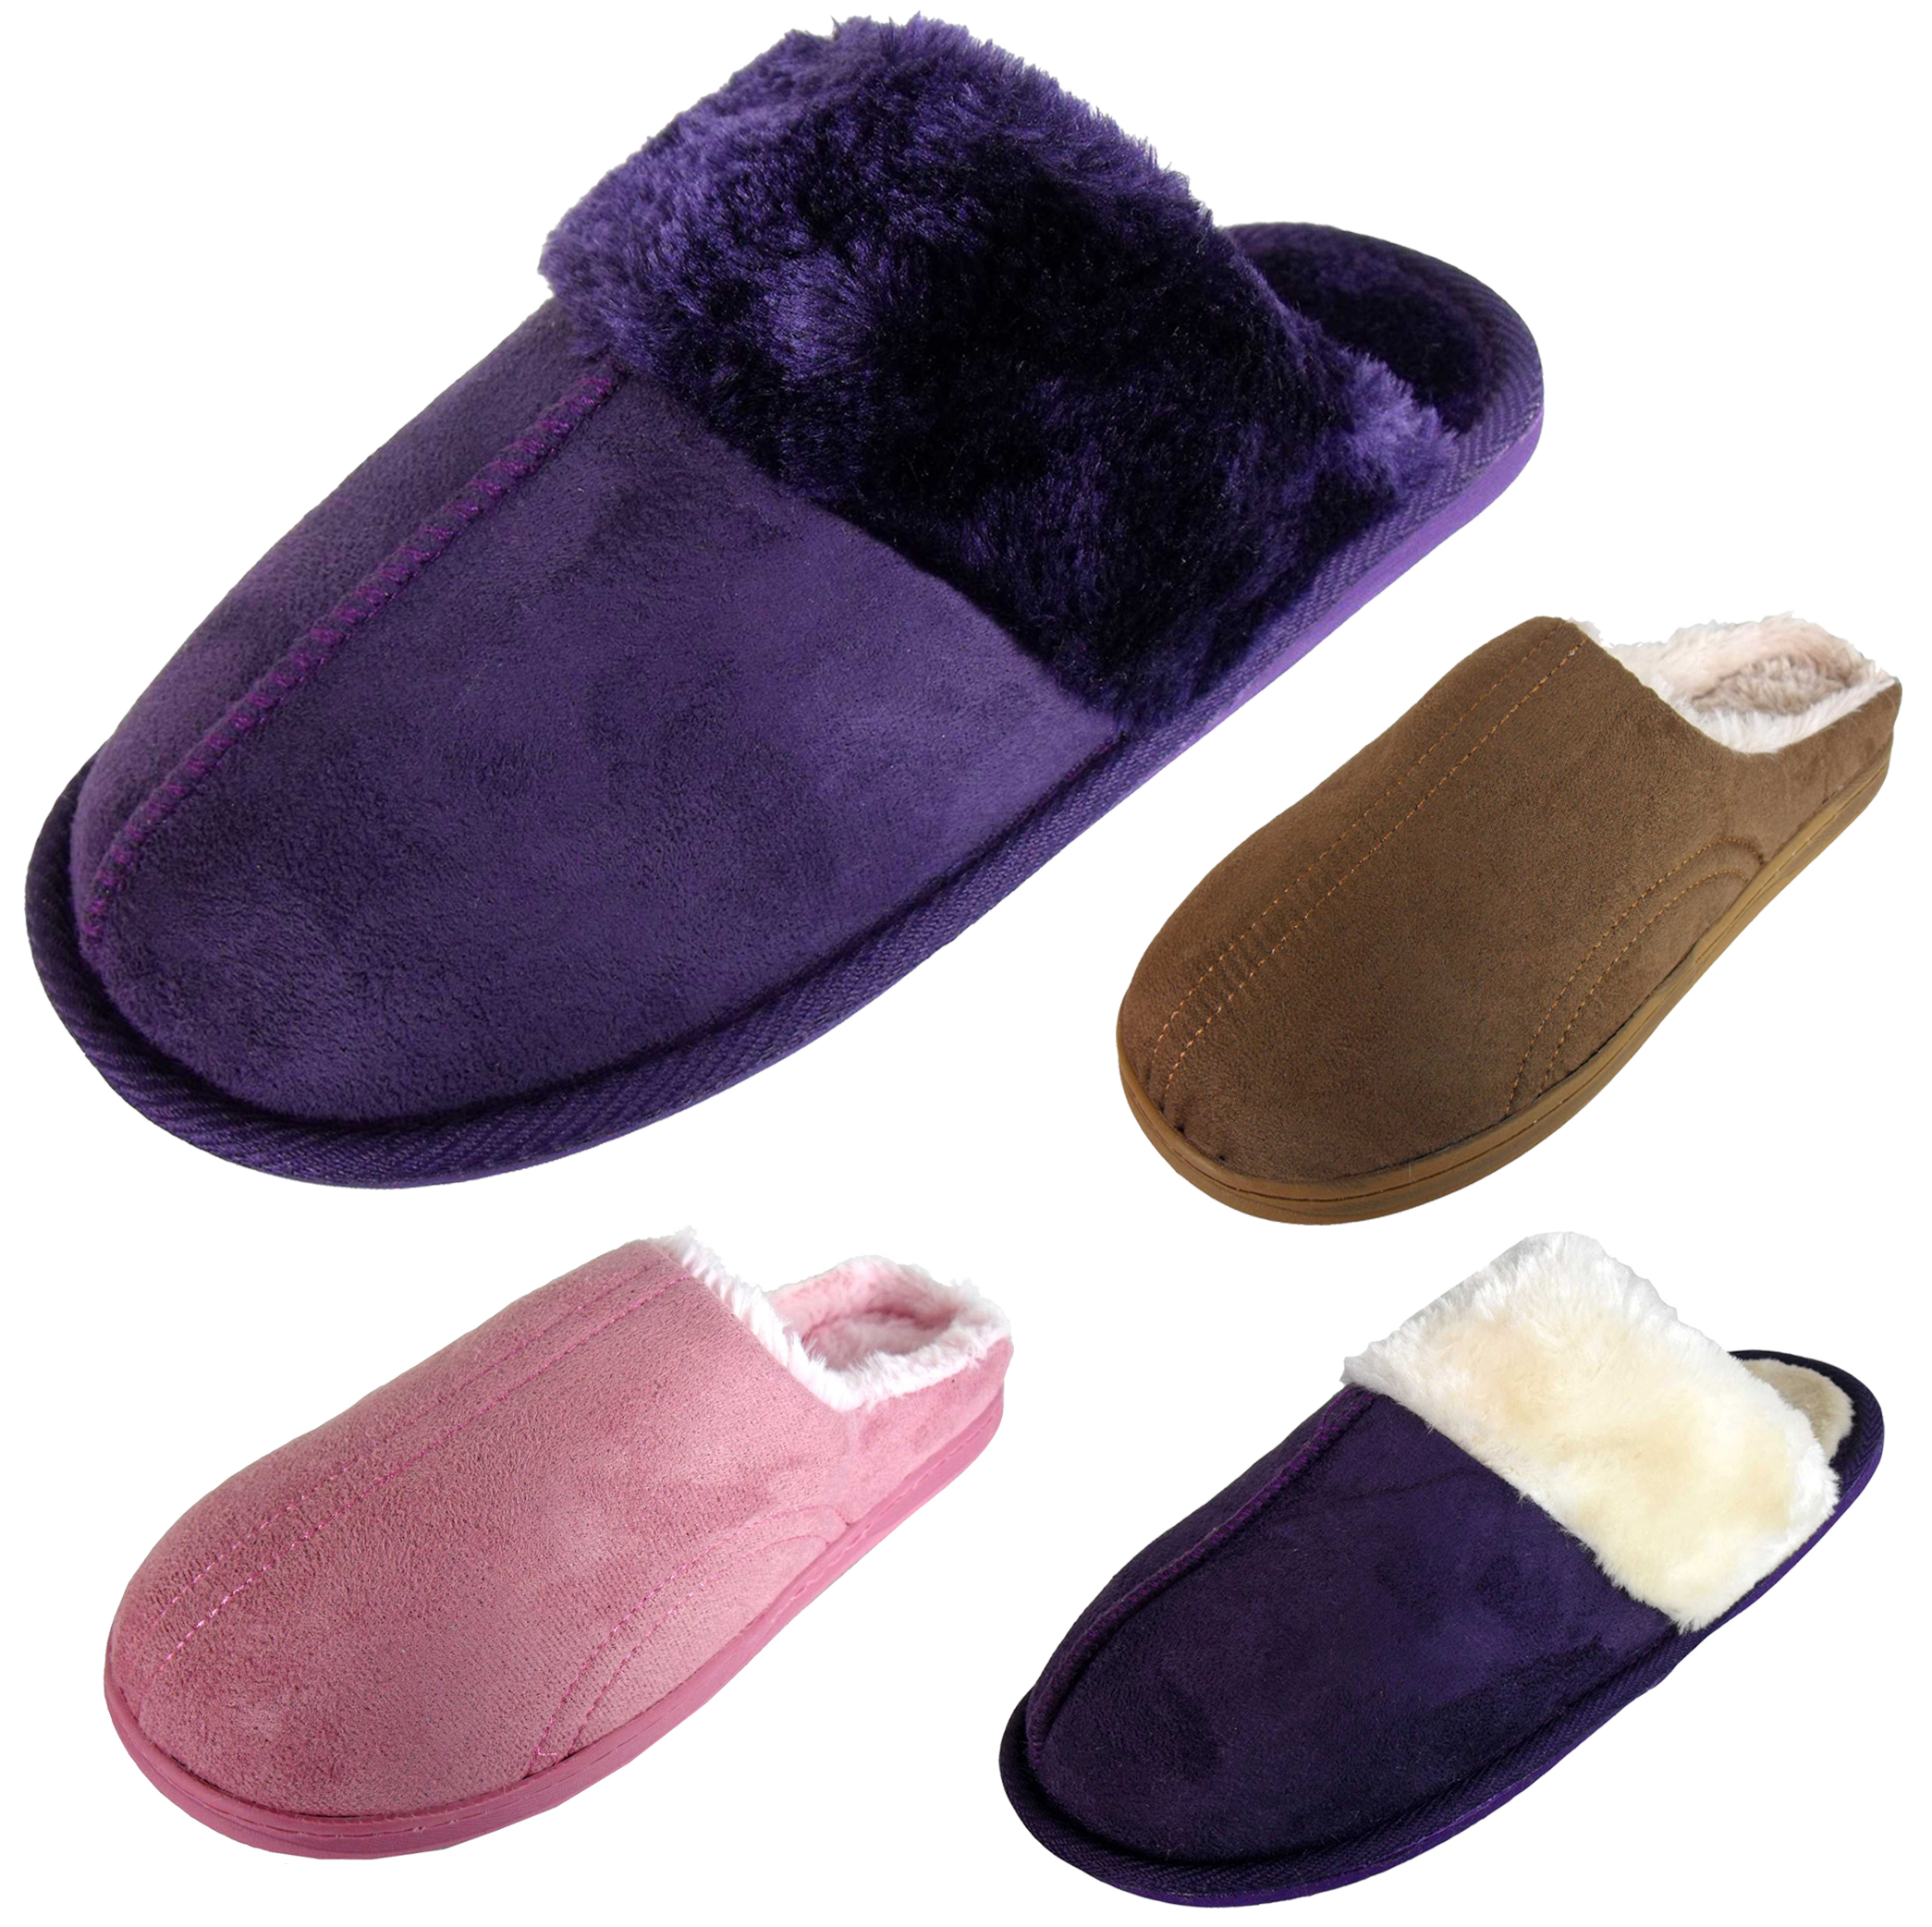 New Ladies Faux Fur Lined Mules Slippers Womens Quality Comfort Plush Slipper